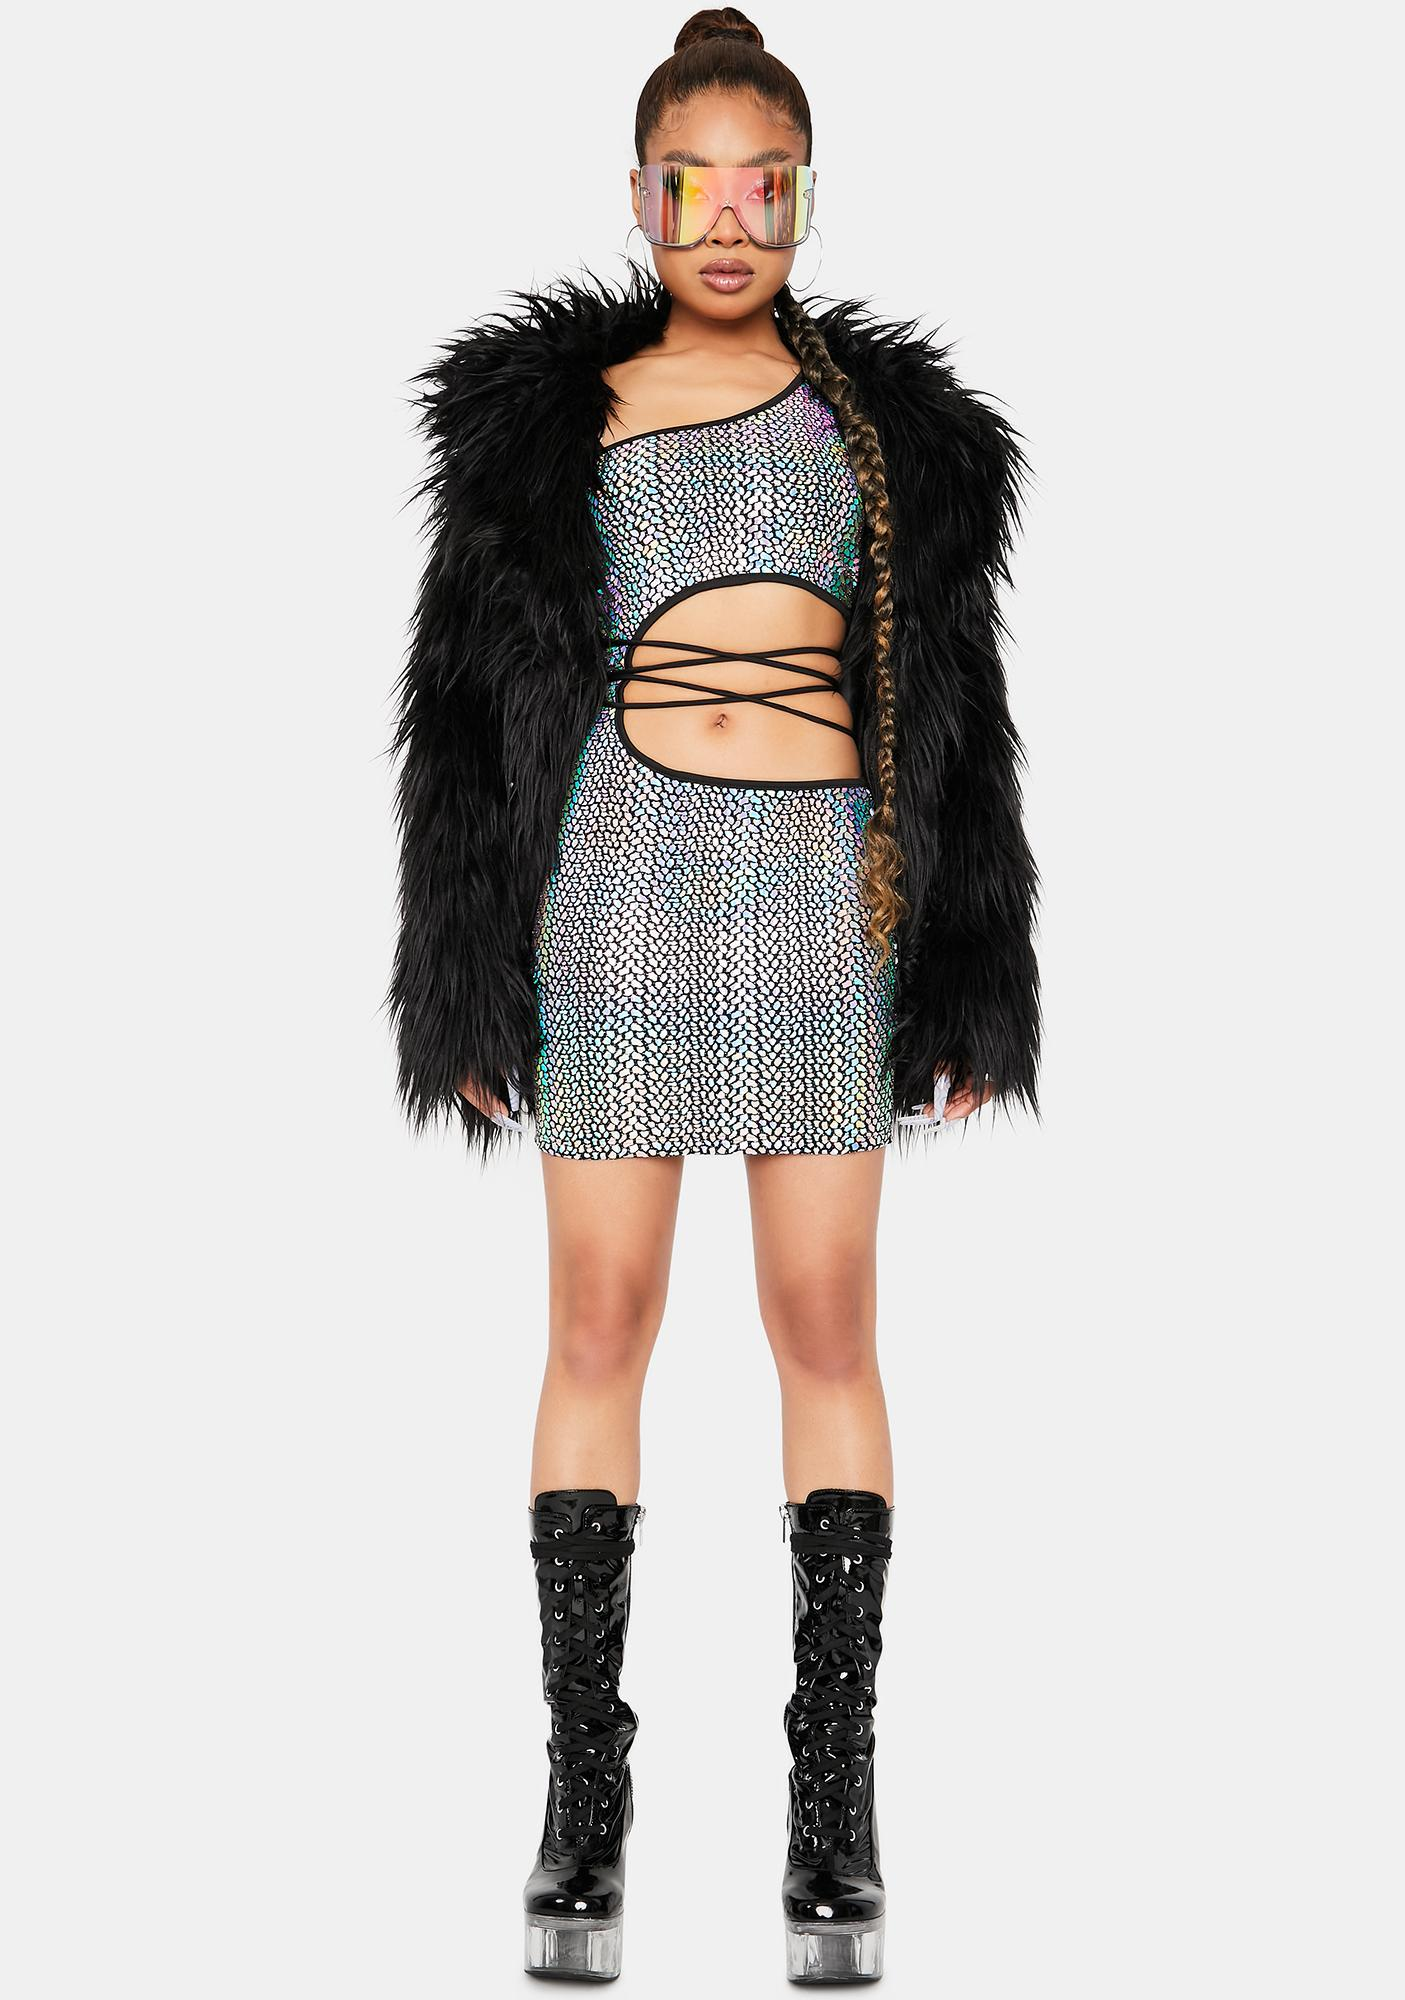 For The Thrills Holographic Cut Out Dress